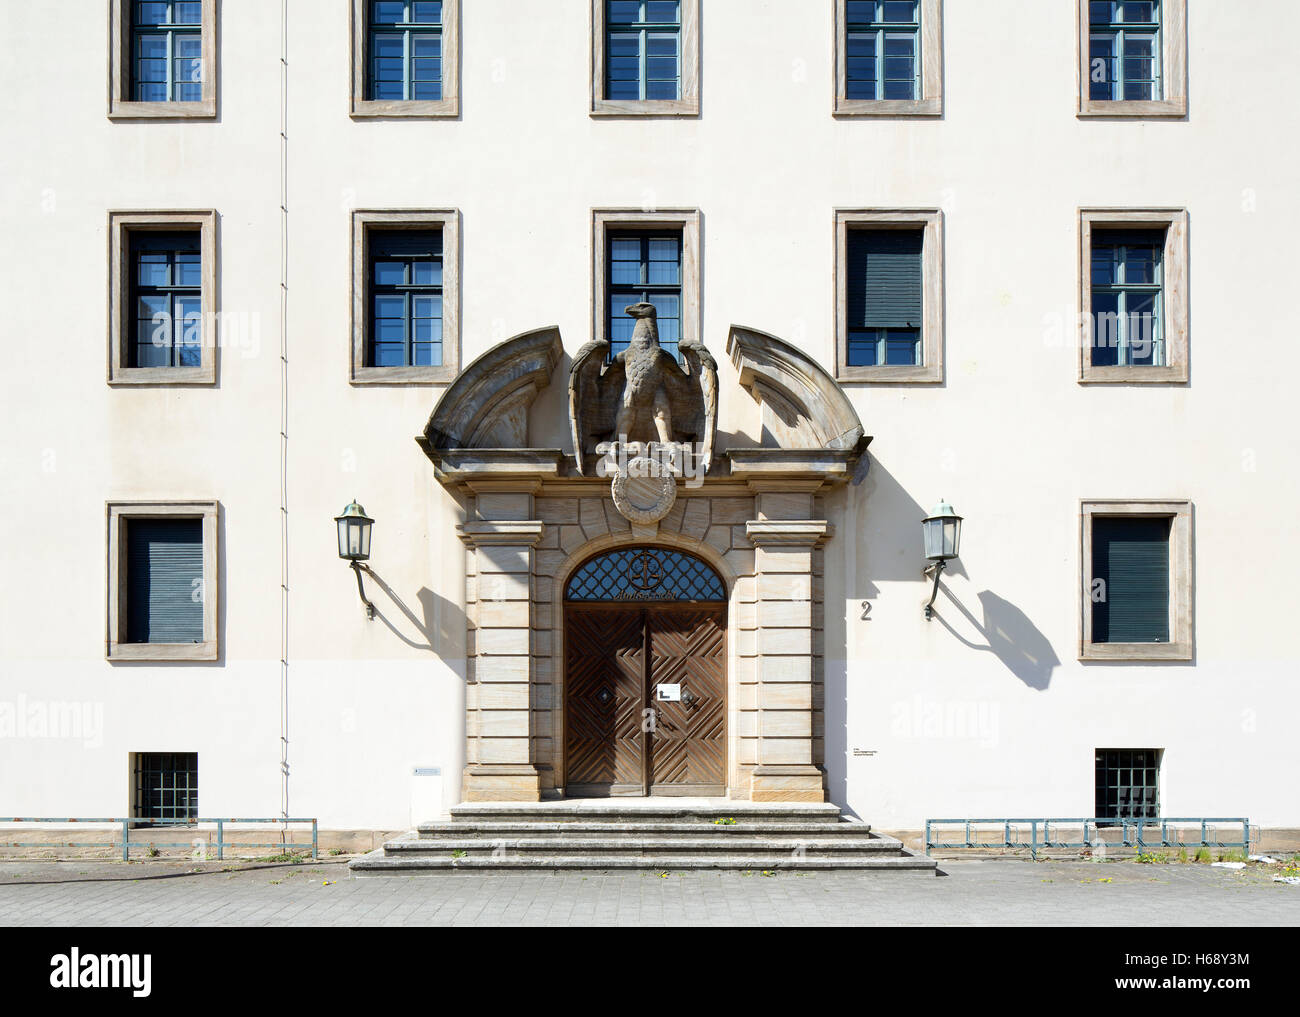 District court, Portal in the main building, Erlangen, Middle Franconia, Bavaria, Germany Stock Photo